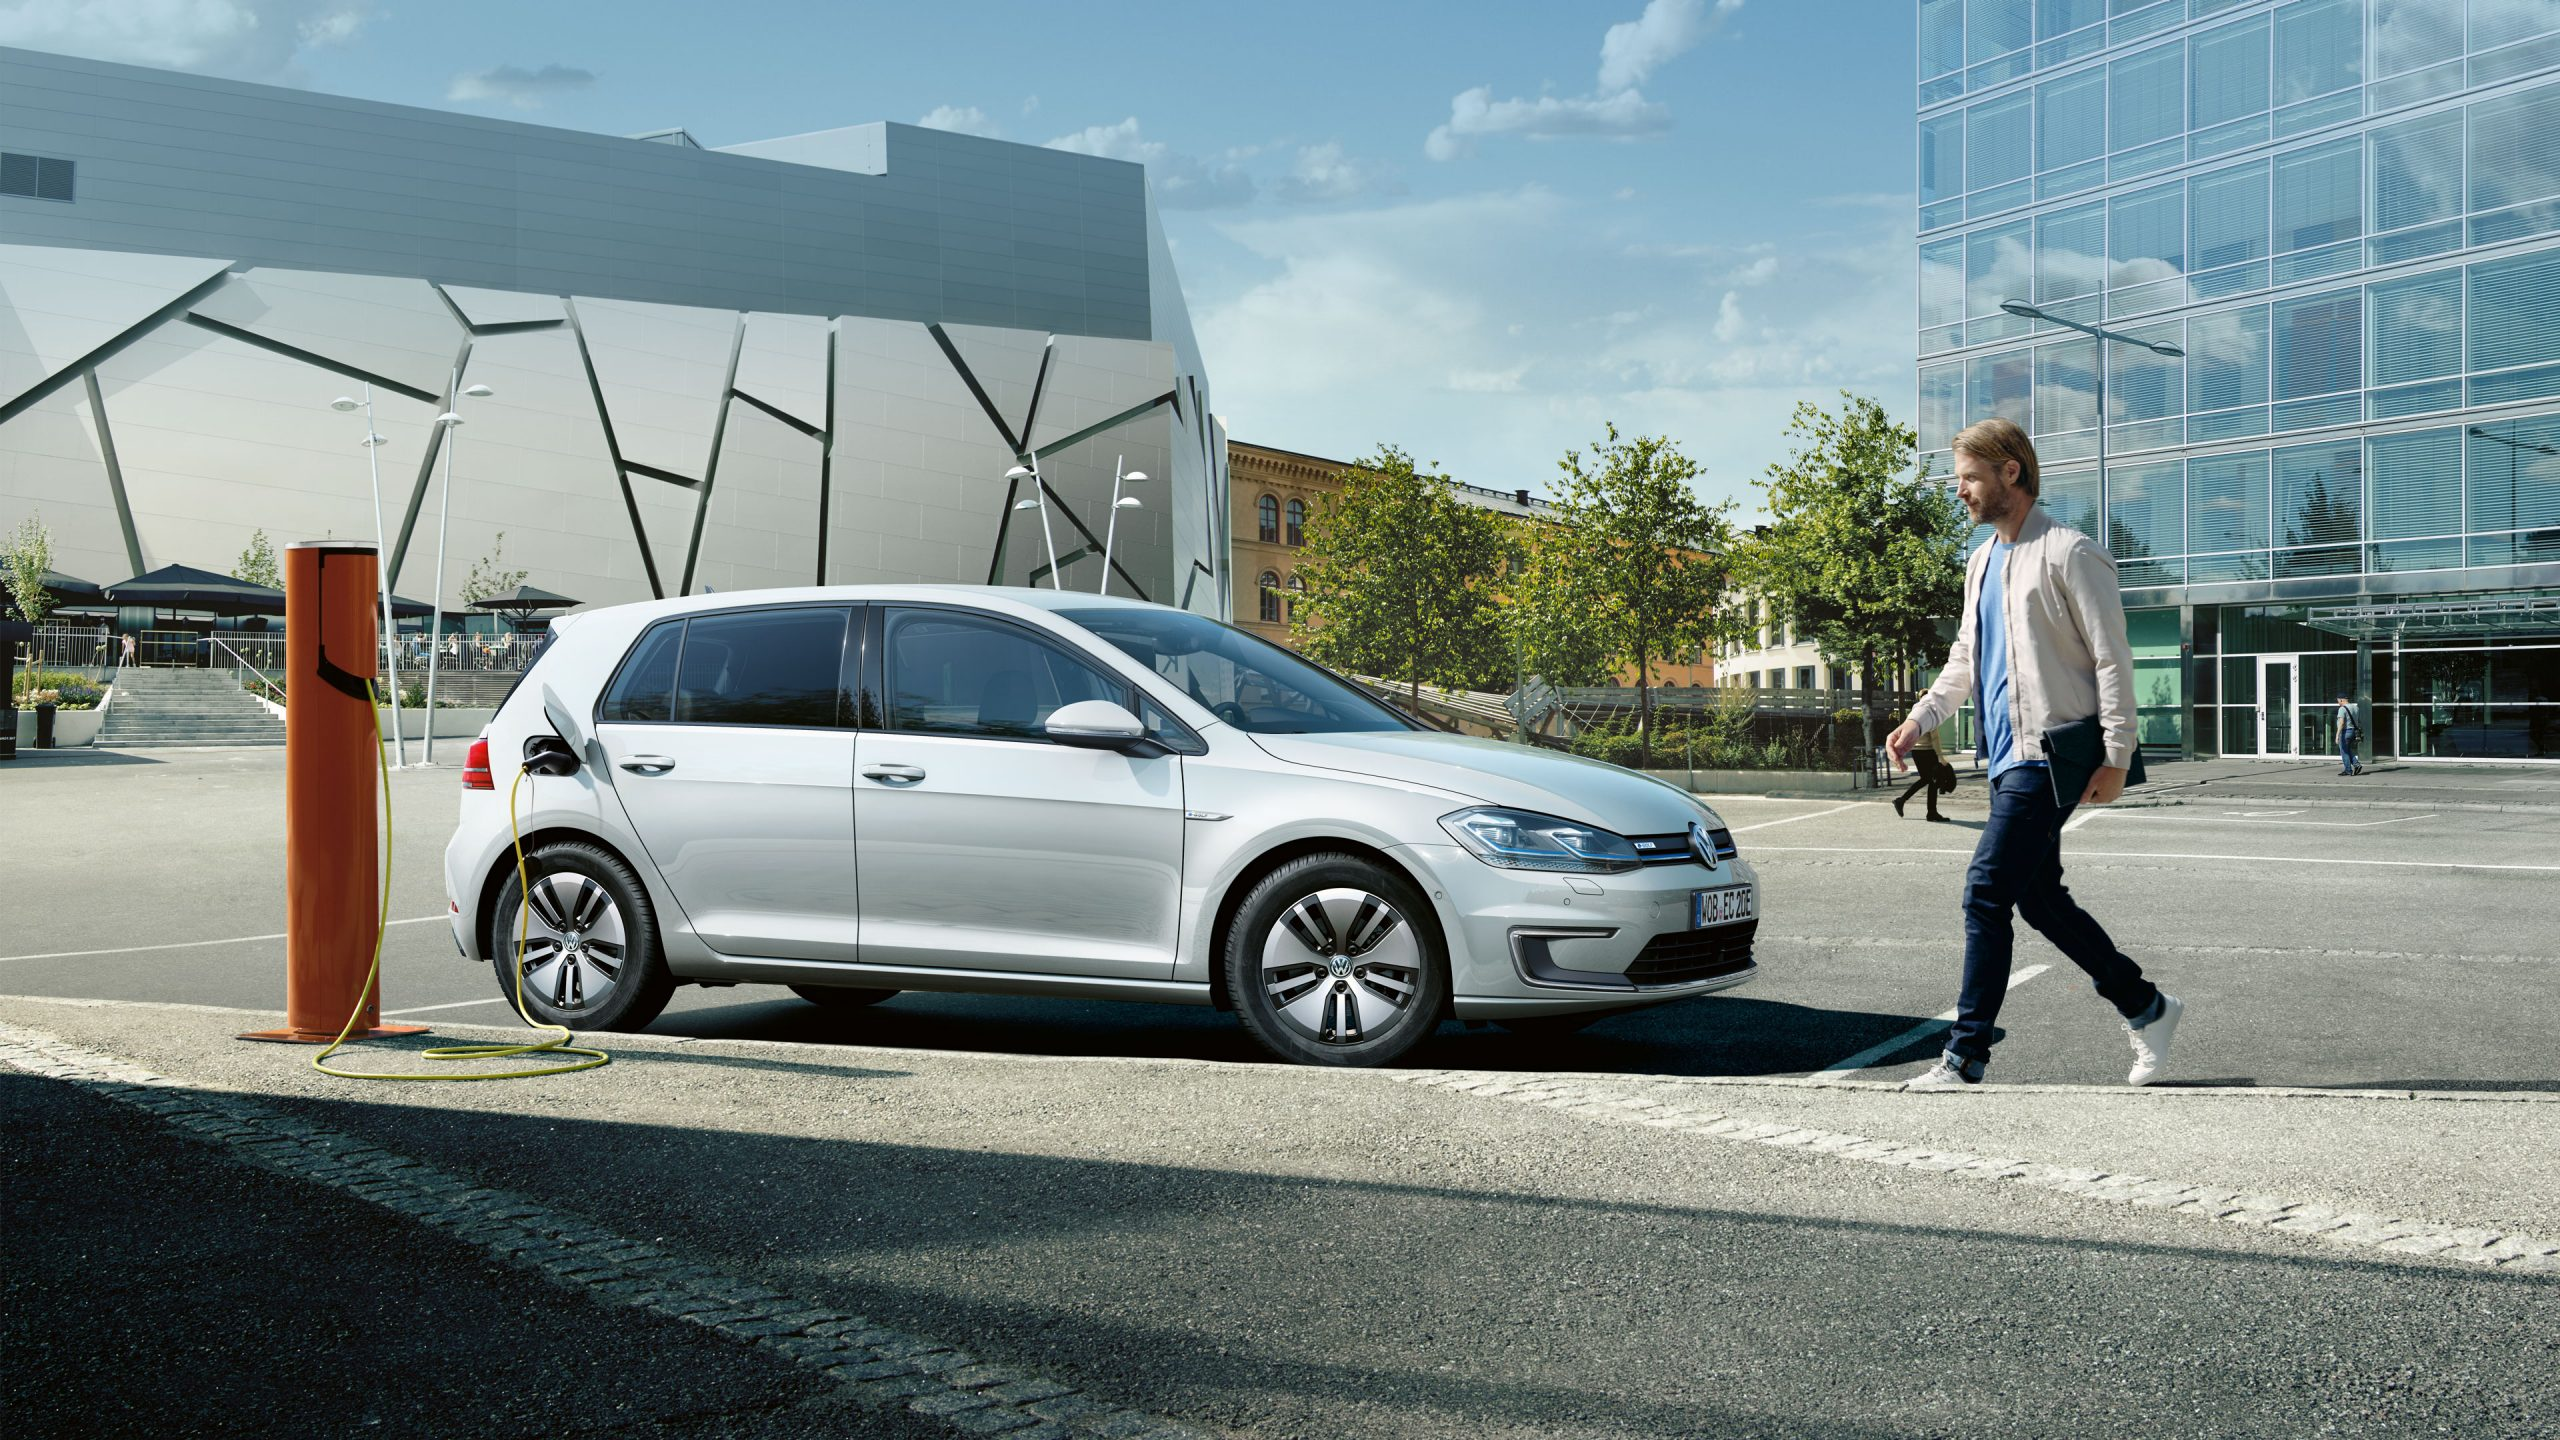 volkswagen e-golf 03